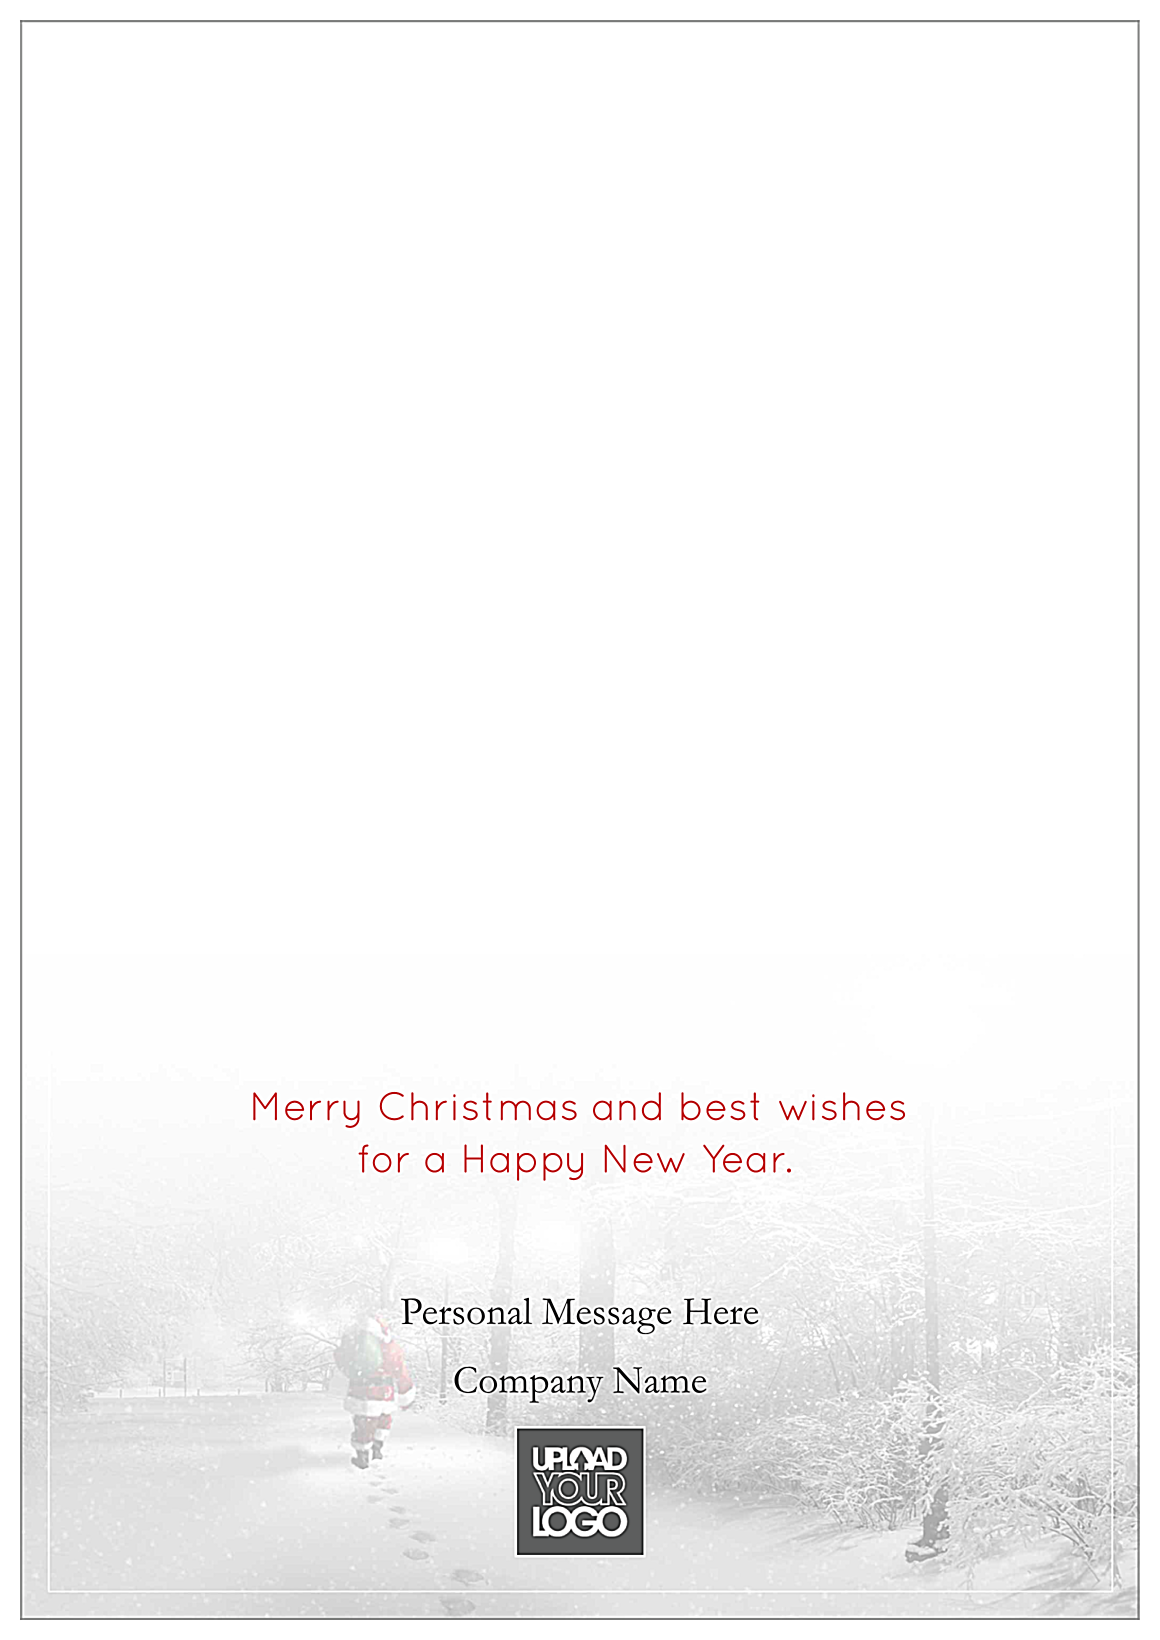 Snowy Merry Christmas back - Greeting Cards Maker